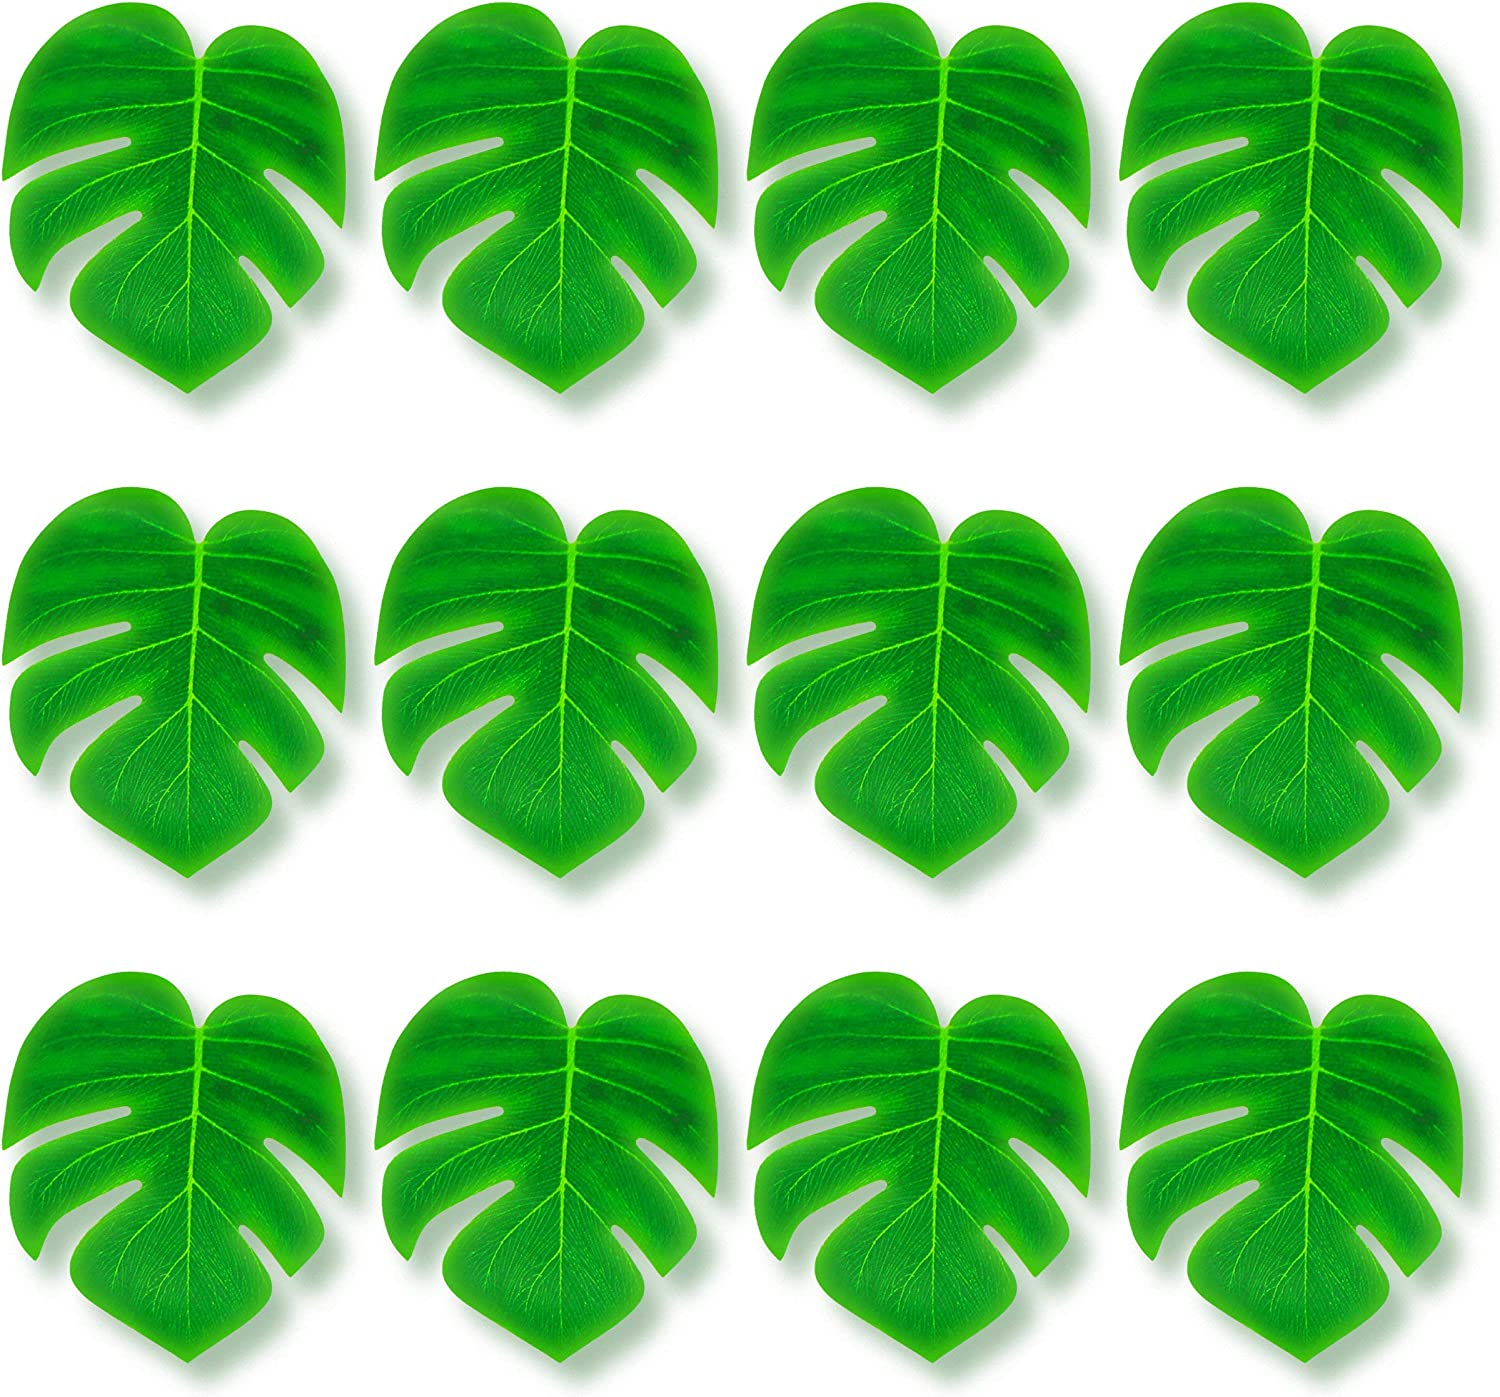 Tytroy 9ft Brown Hawaiian Luau Grass Table Skirt with Set of 12 Tropical Green Leaves